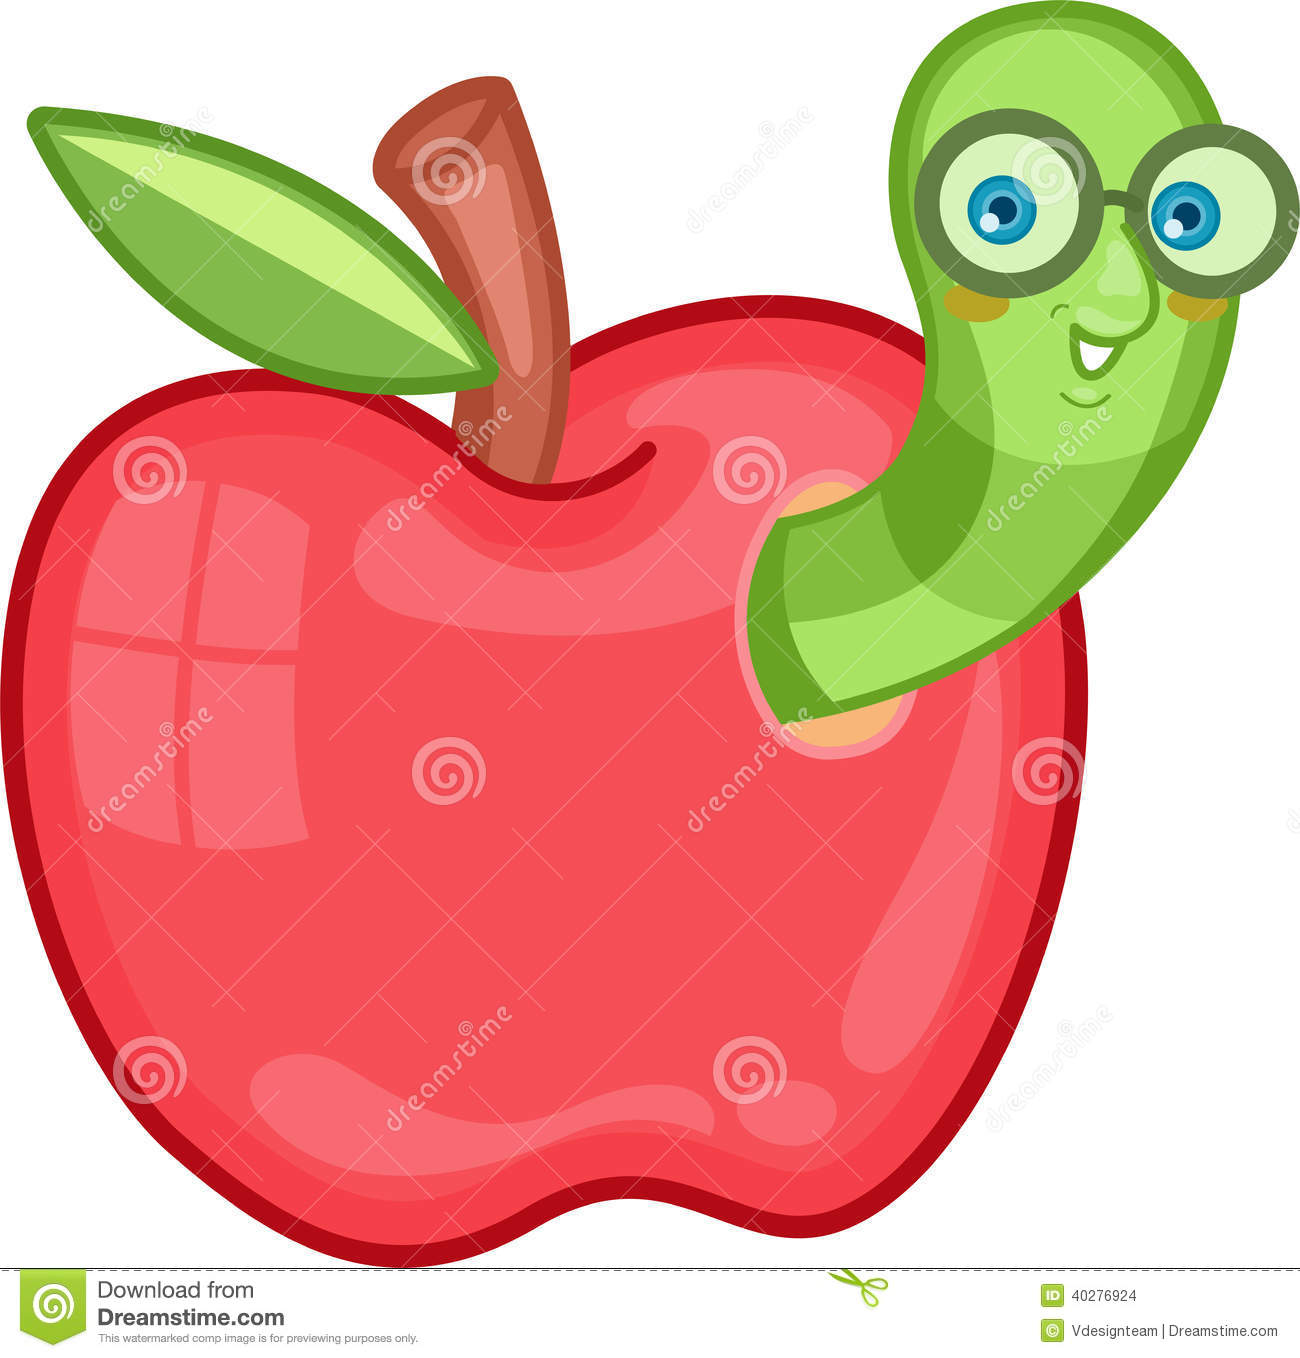 clipart apple worm - photo #30